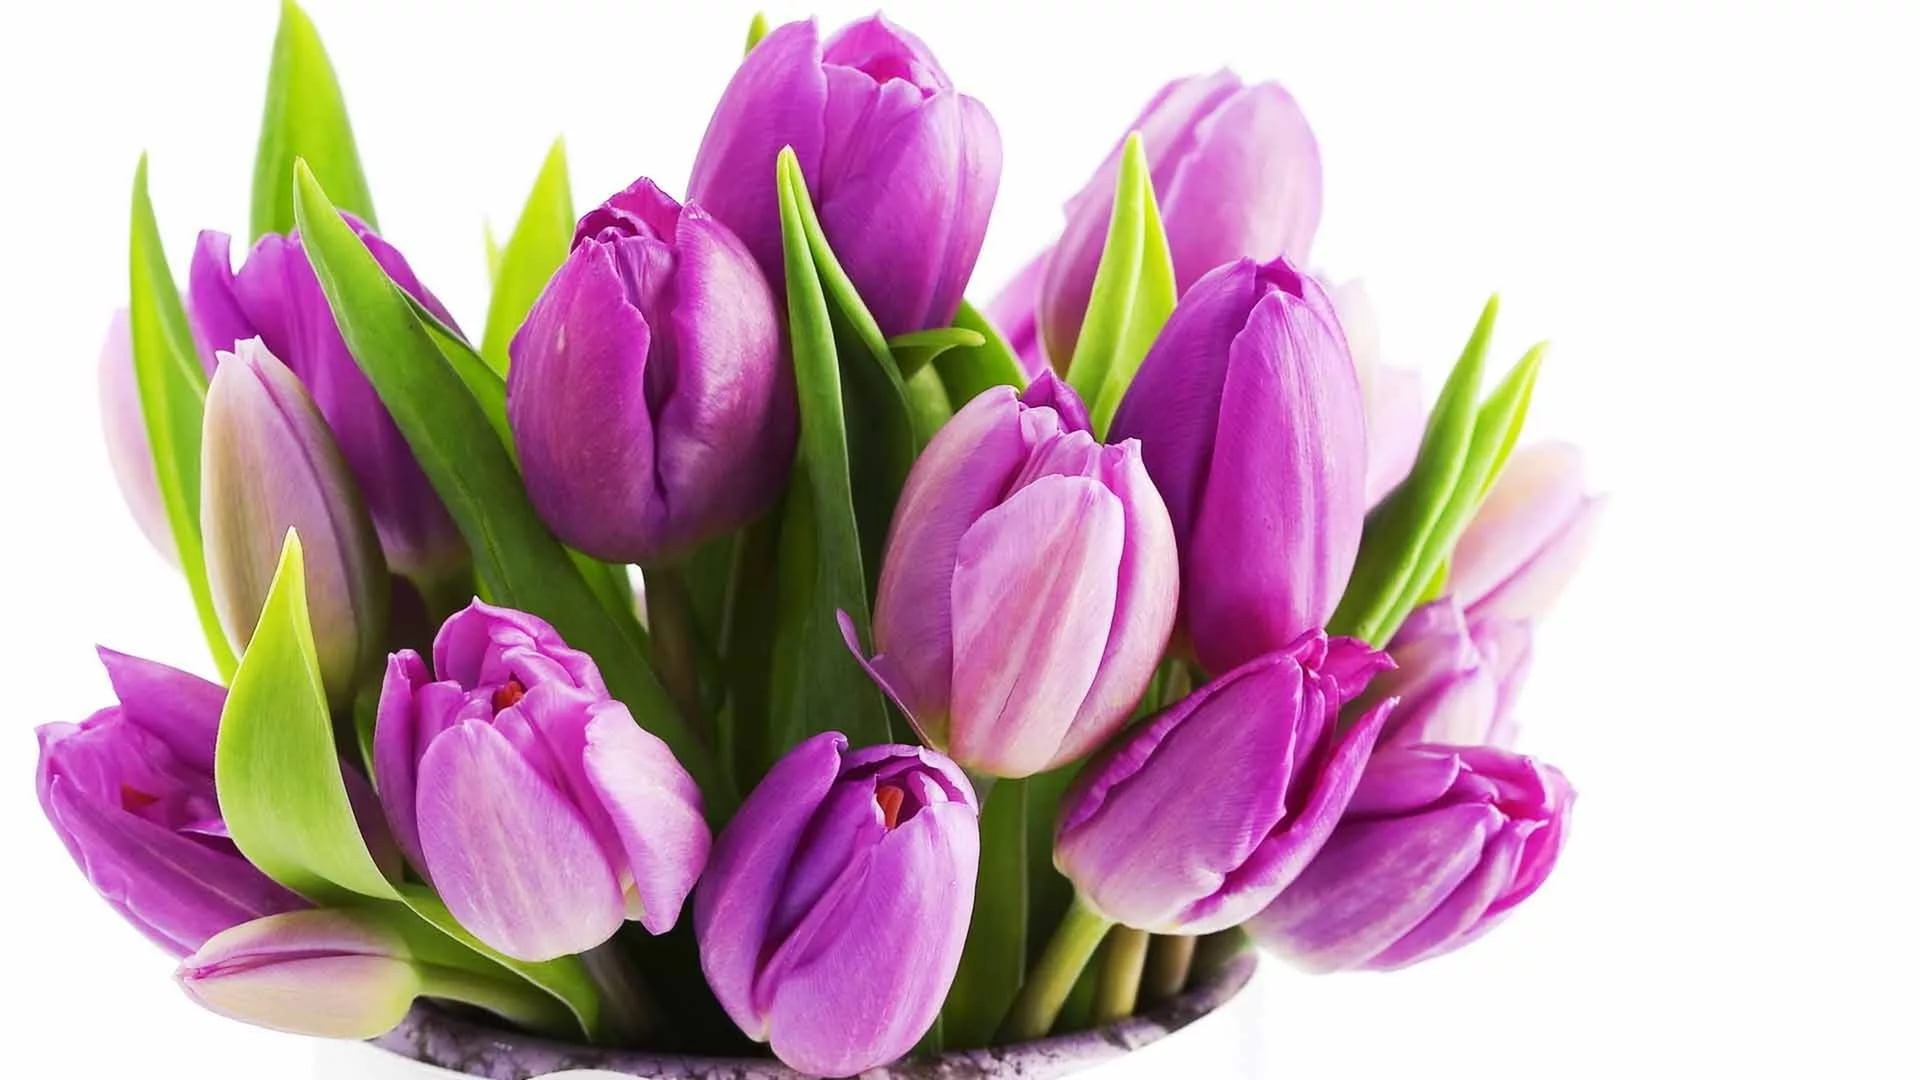 International Women's Day Flowers background wallpaper